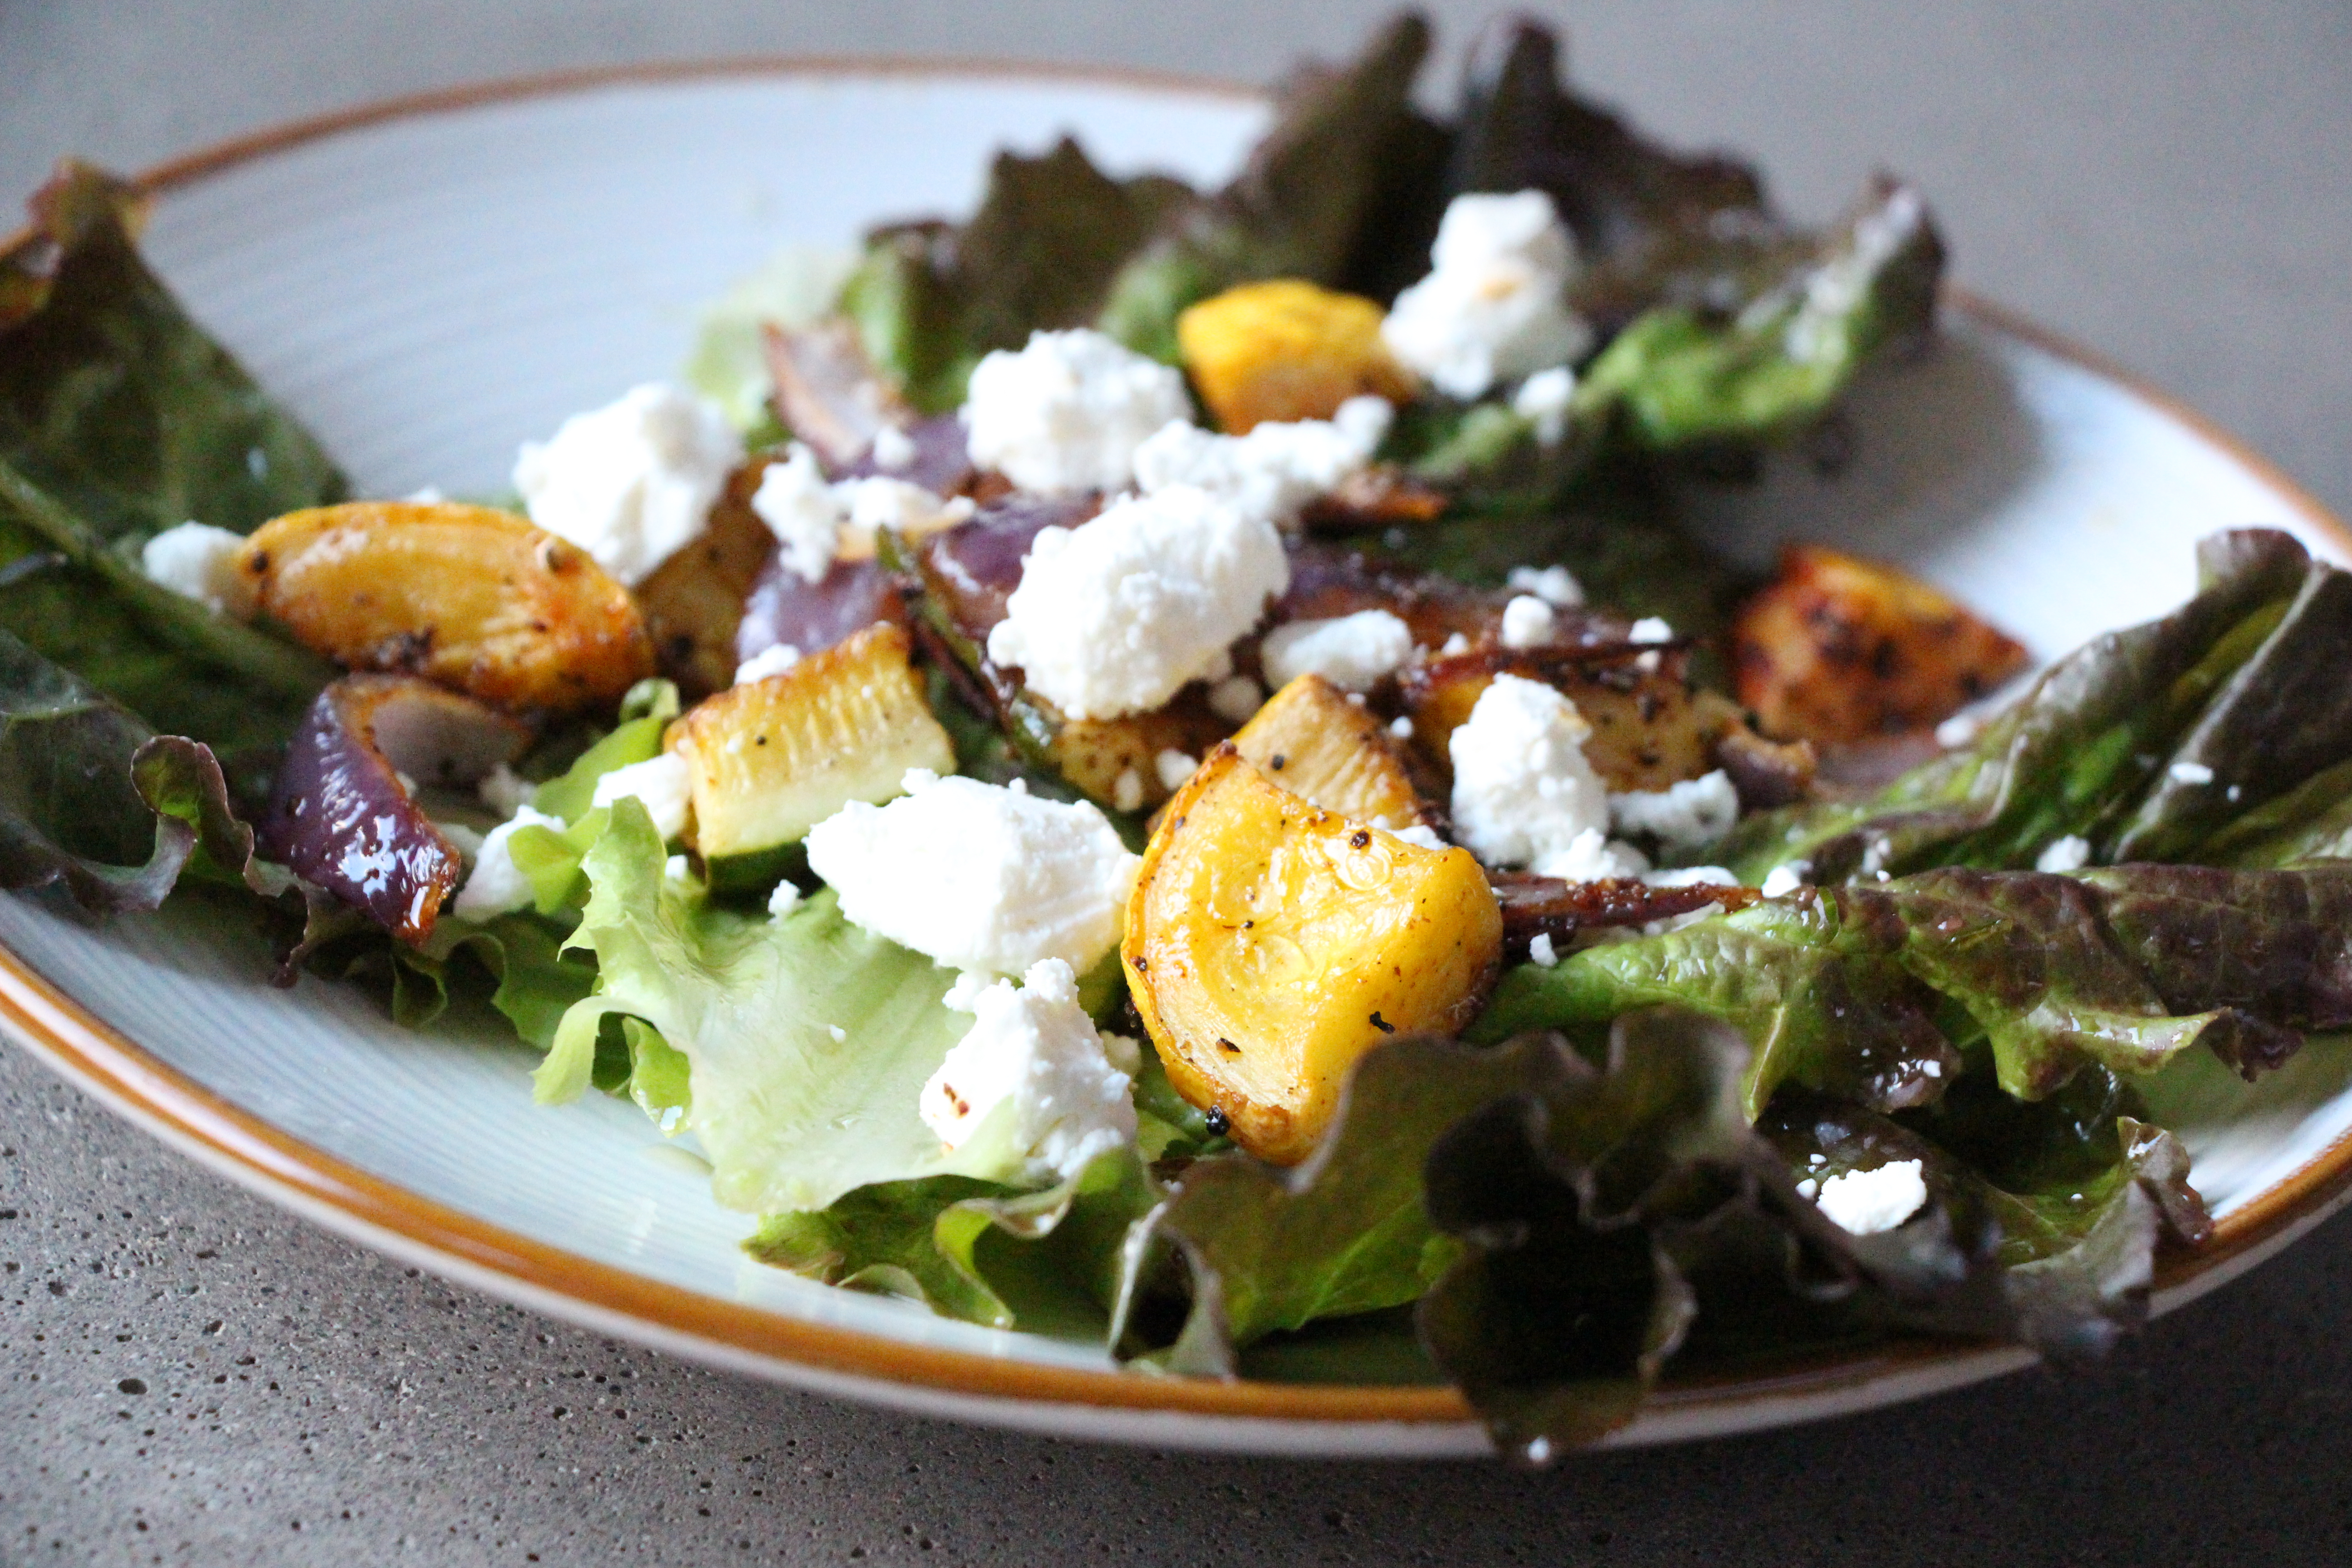 Roasted Summer Vegetable Salad with Goat Cheese